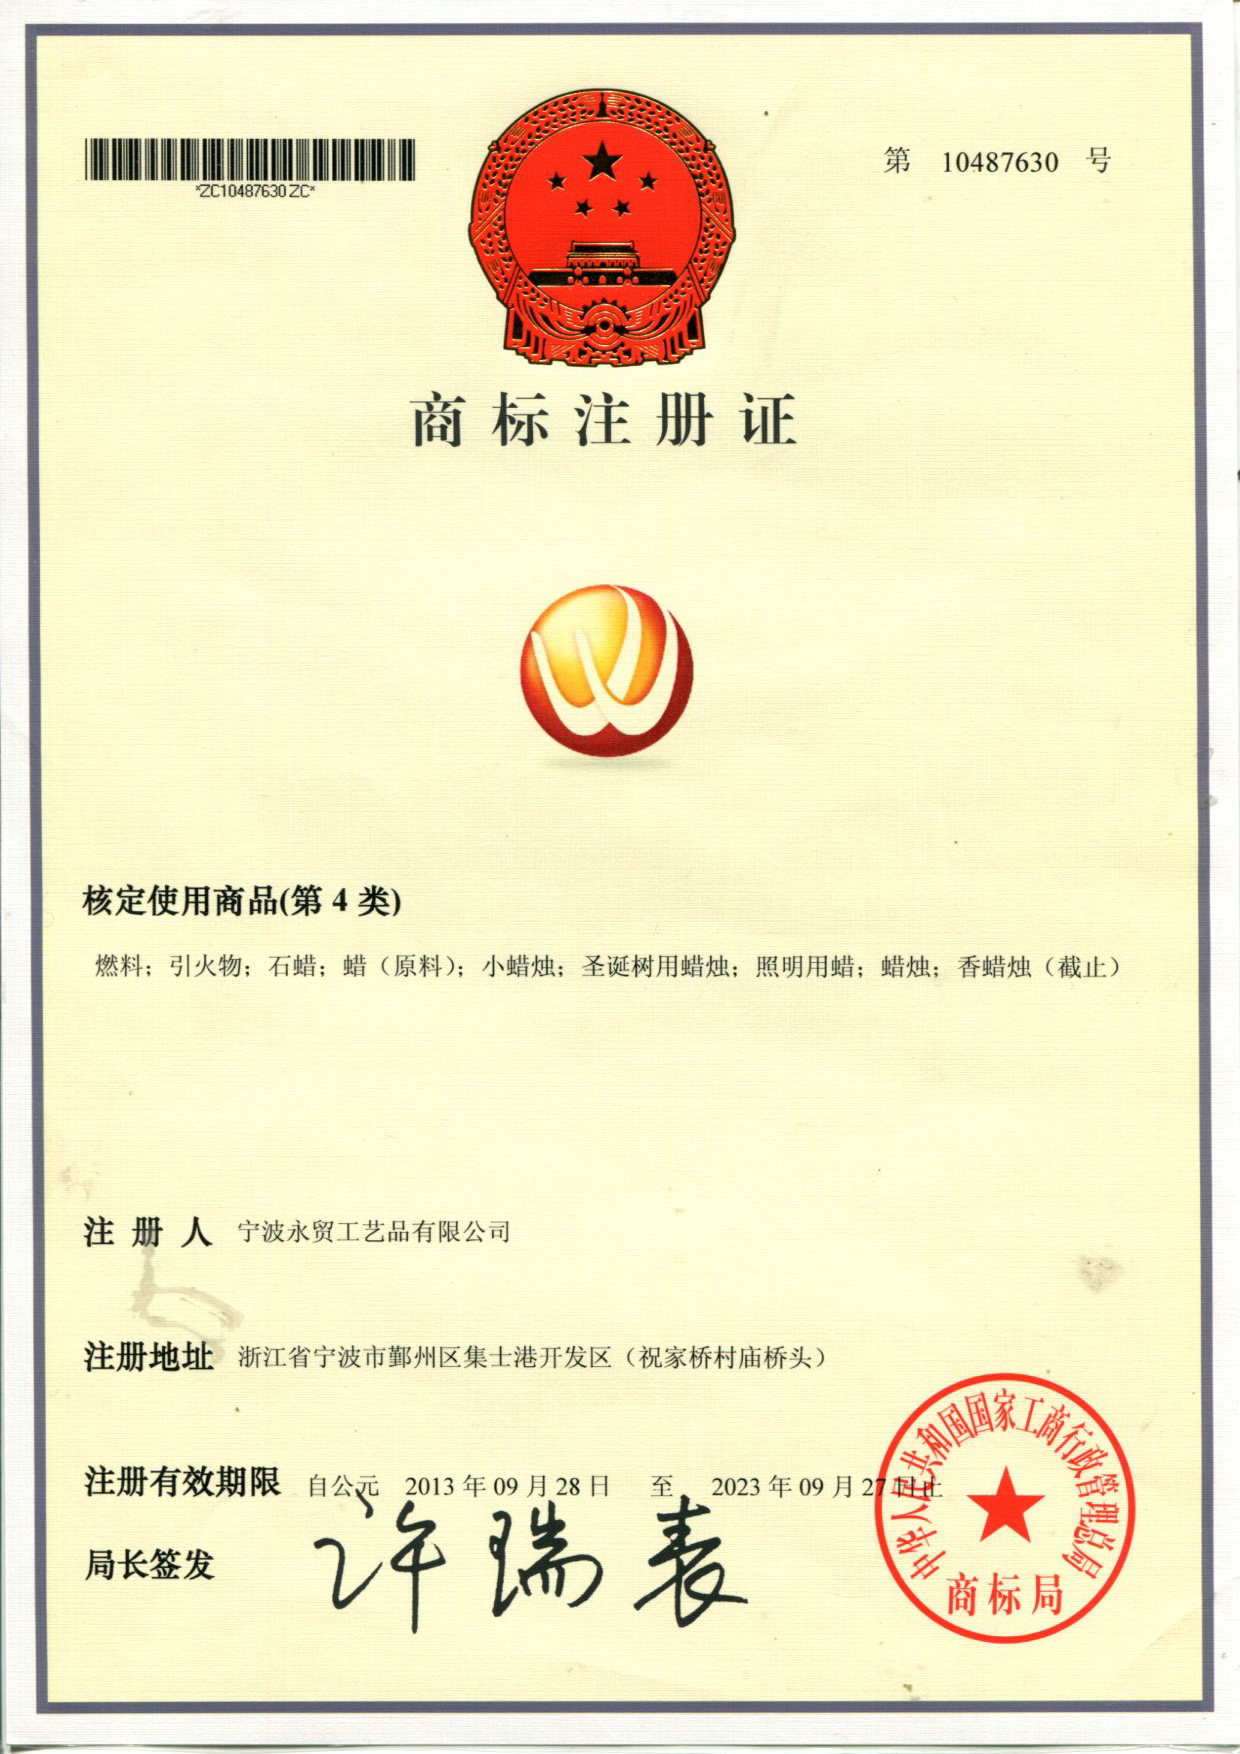 NINGBO WINS TIME IMPORT & EXPORT CO., LTD.